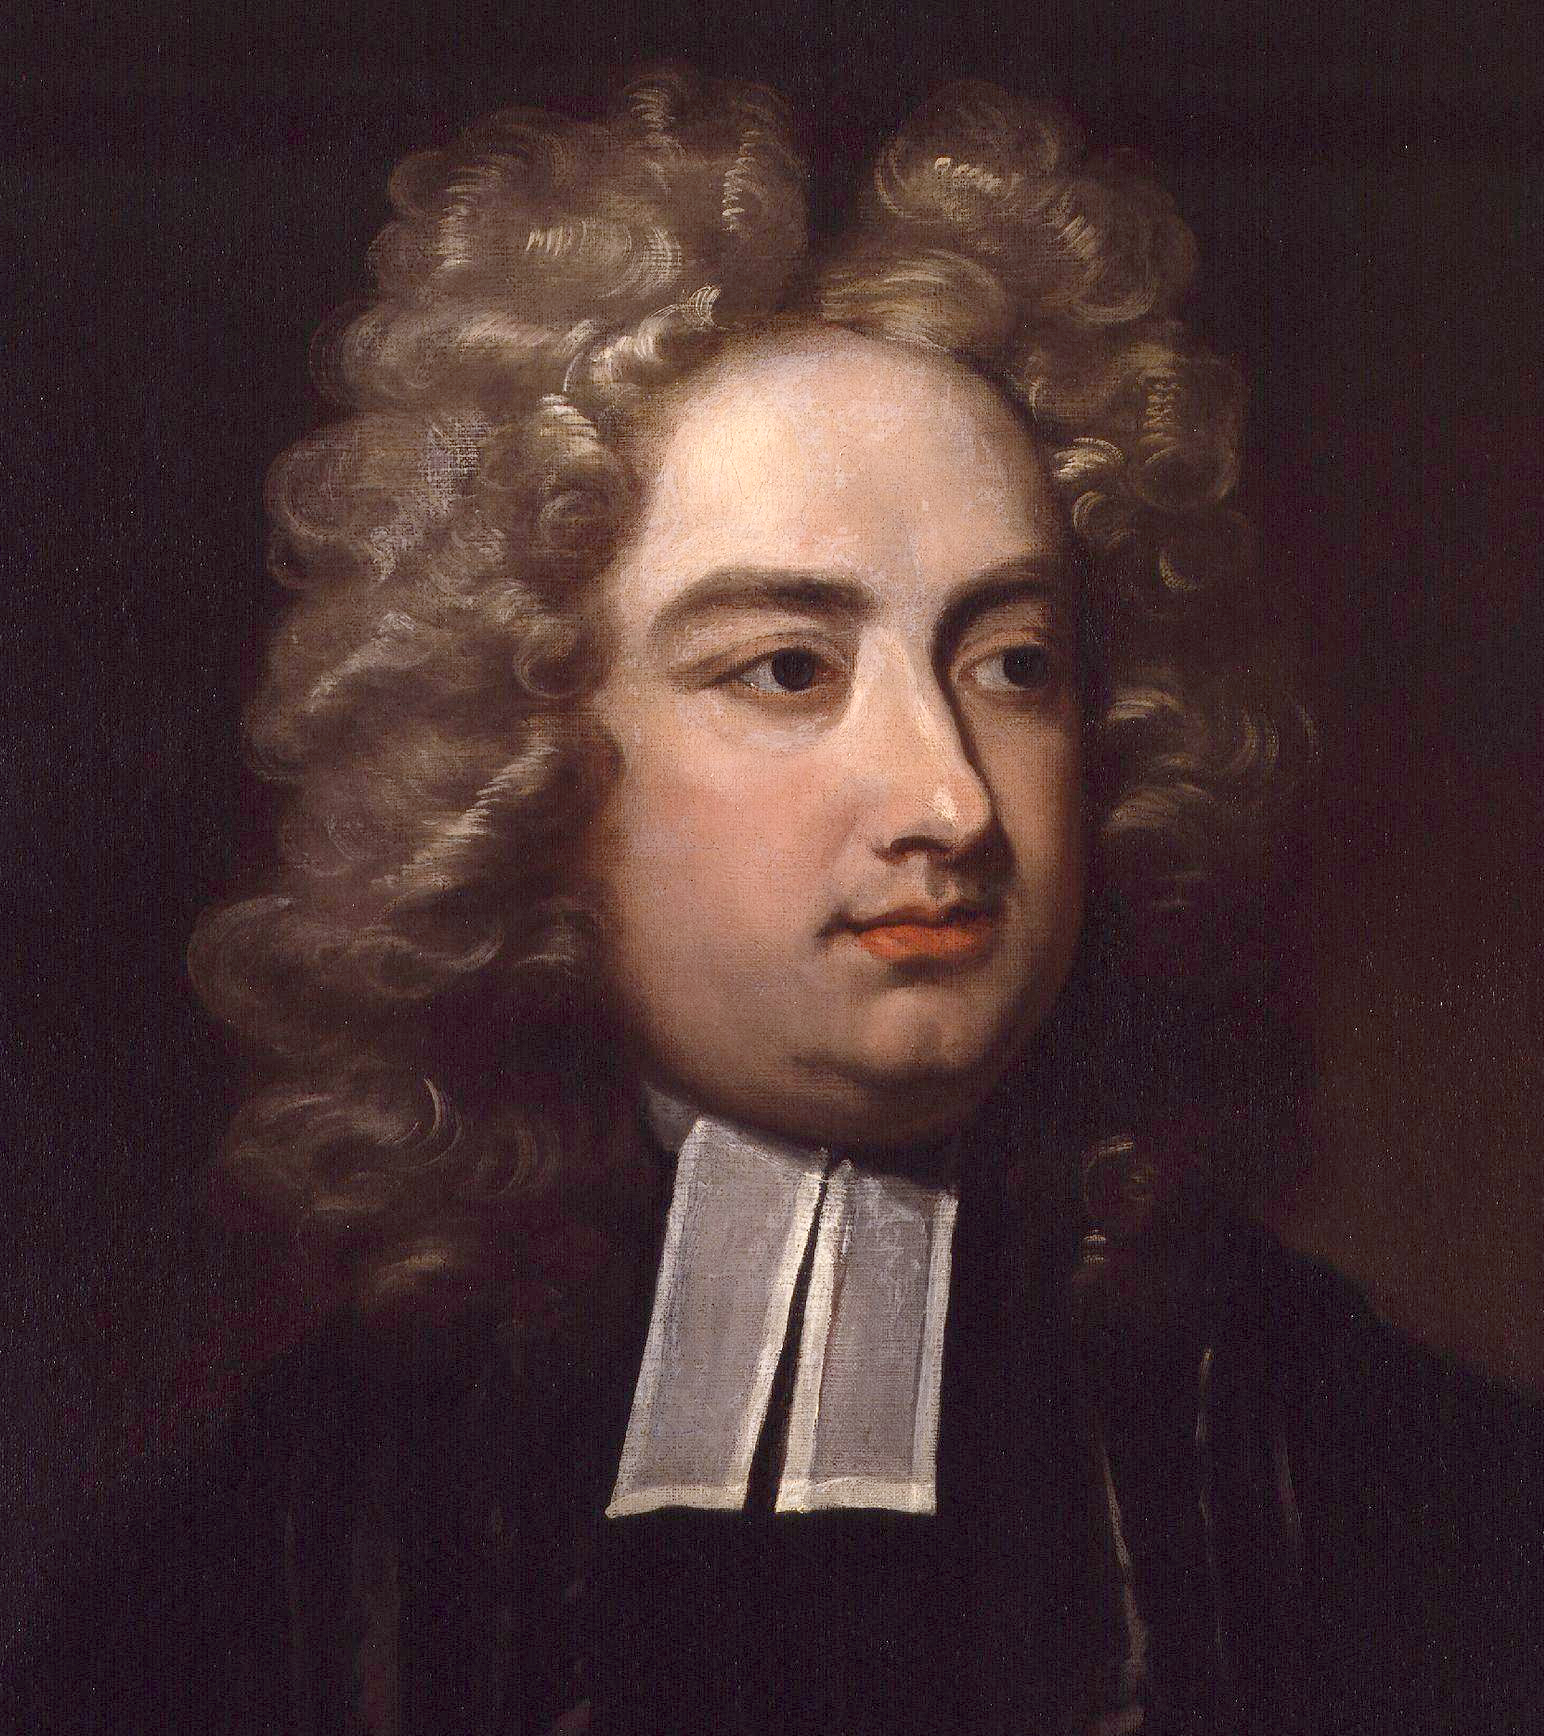 http://upload.wikimedia.org/wikipedia/commons/4/4b/Jonathan_Swift_by_Charles_Jervas_detail.jpg